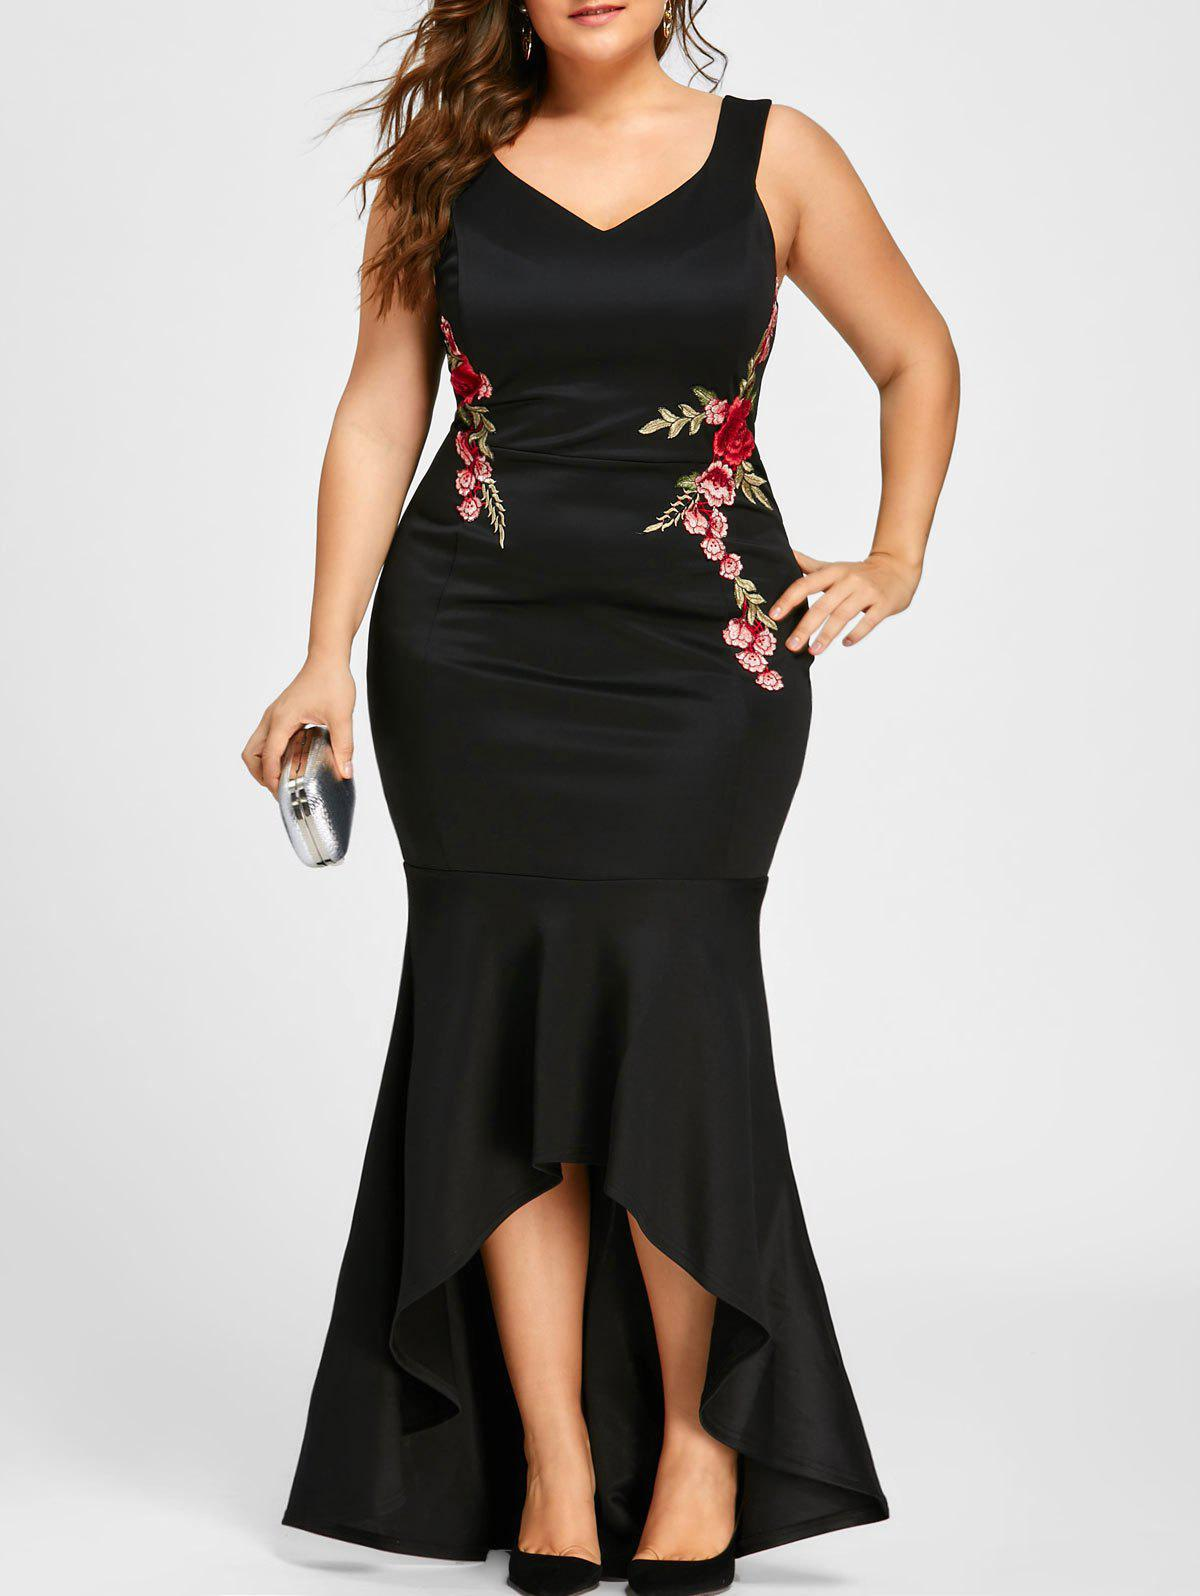 870de51da2c59 Plus Size Sleeveless Party Mermaid Engagement Dress